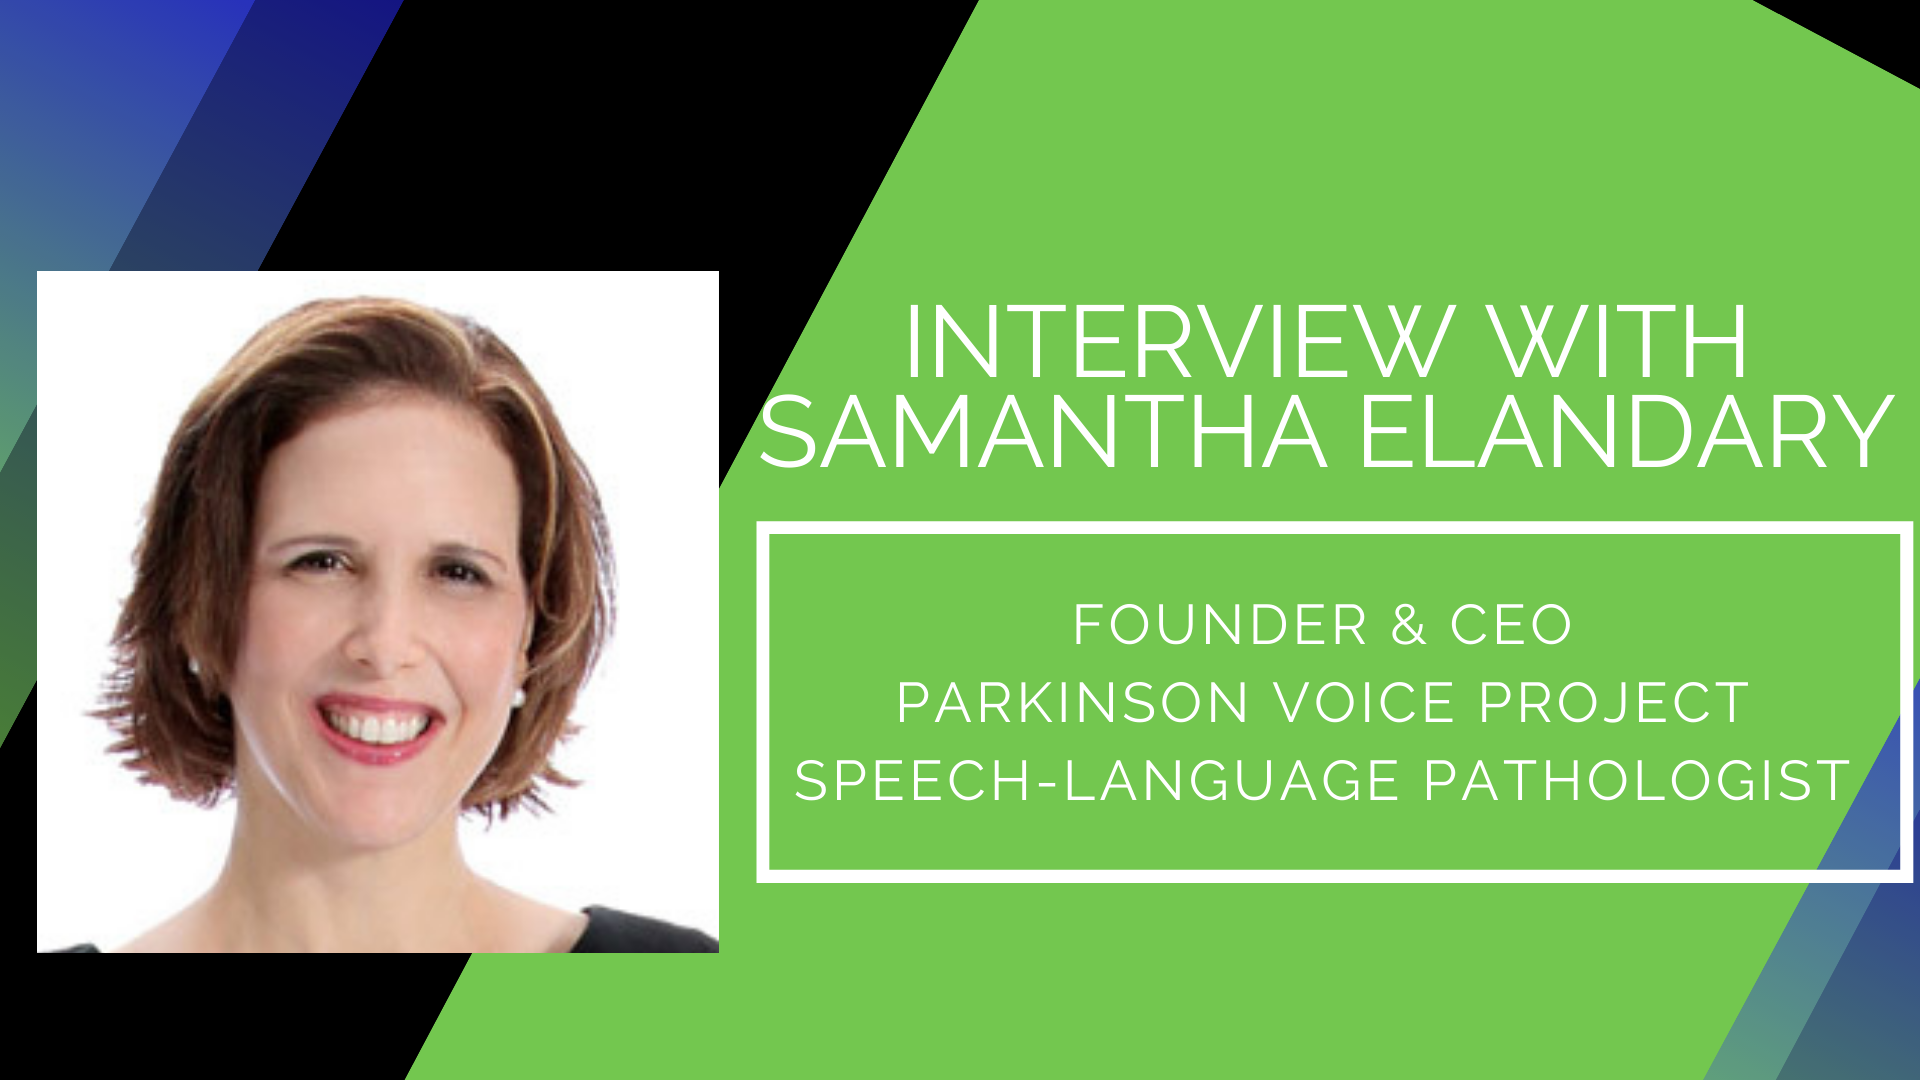 Interview with Samantha Elandary Founder and CEO Parkinson Voice Project introduction slide